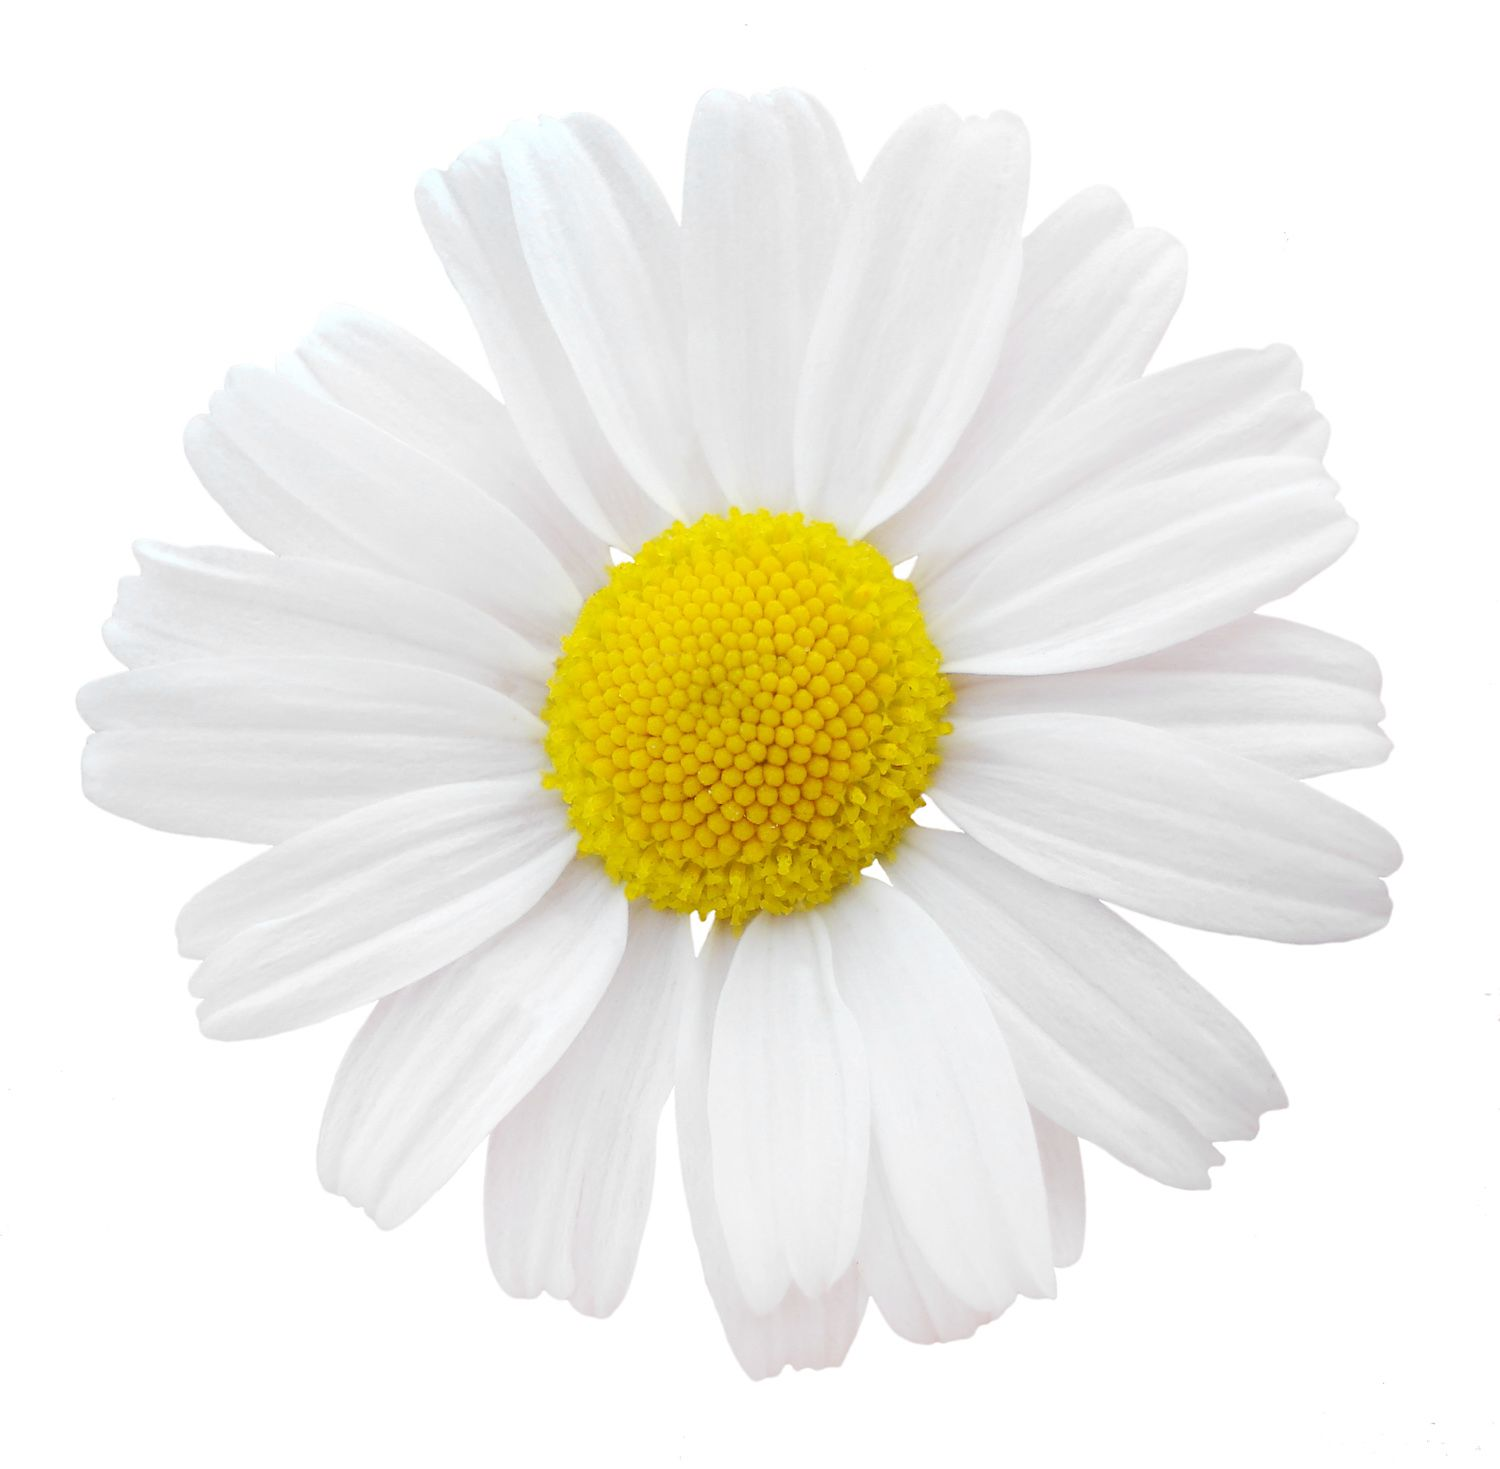 Wedding Flowers Meaning: Daisy. BIRTHDAY MONTH: April. COLORS